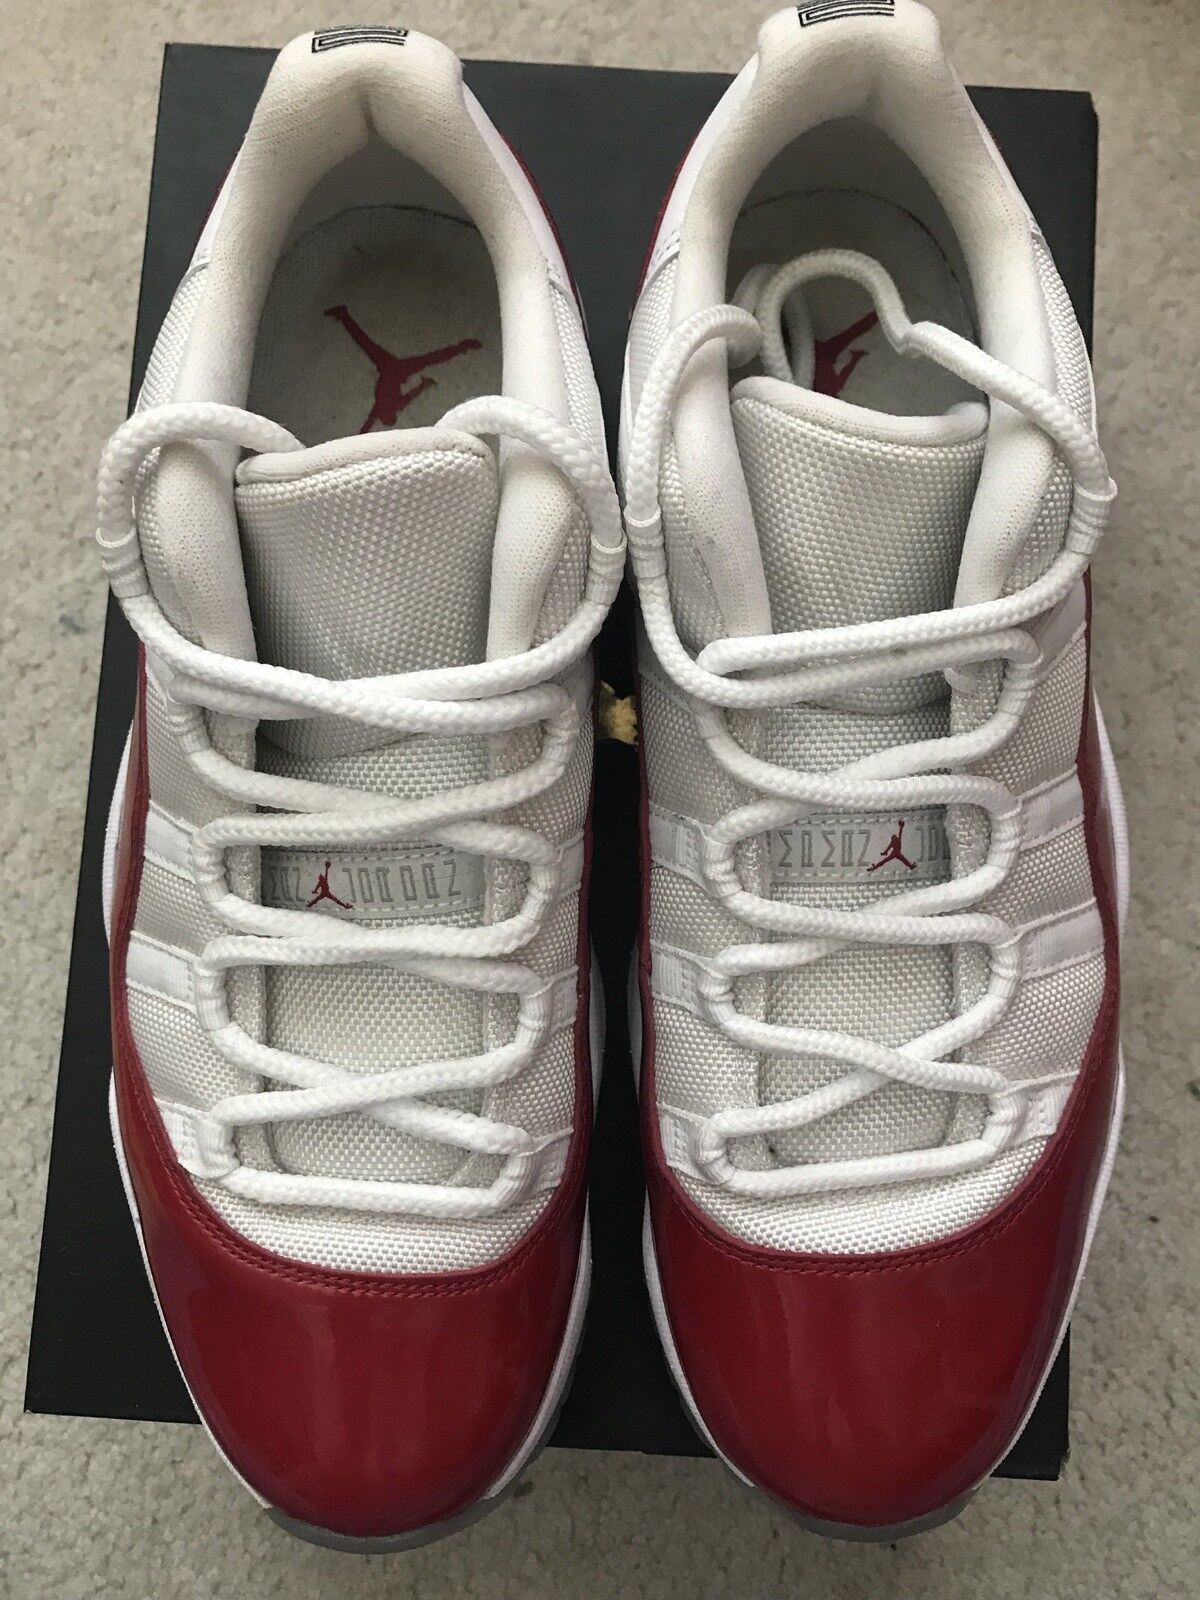 Nike Air Jordan 11 Low Cherry Red Size 10 good condition worn 2